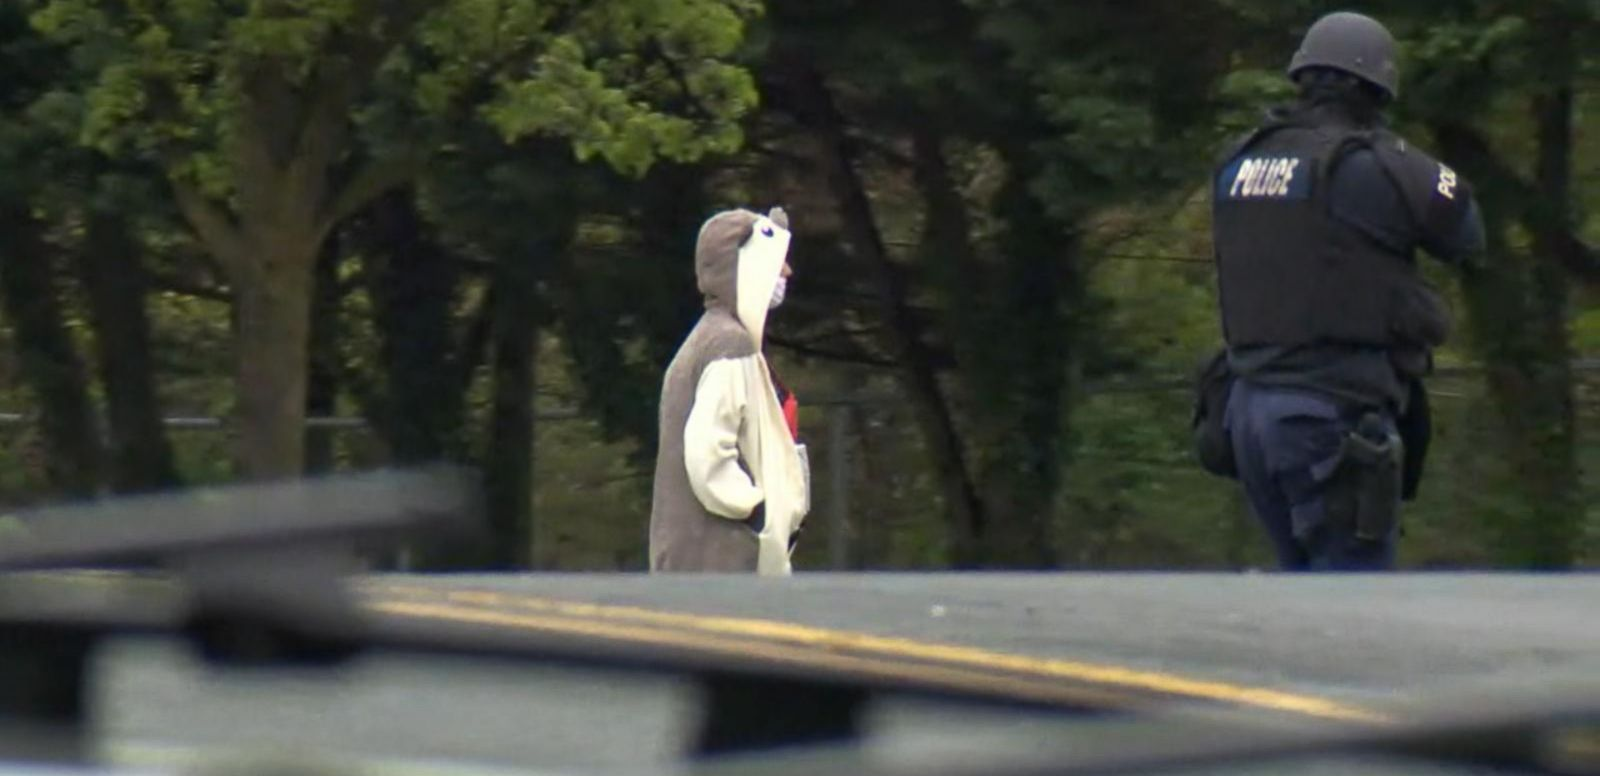 VIDEO: Man Dressed in Bizarre Animal Costume Threatens TV Station With Fake Suicide Vest